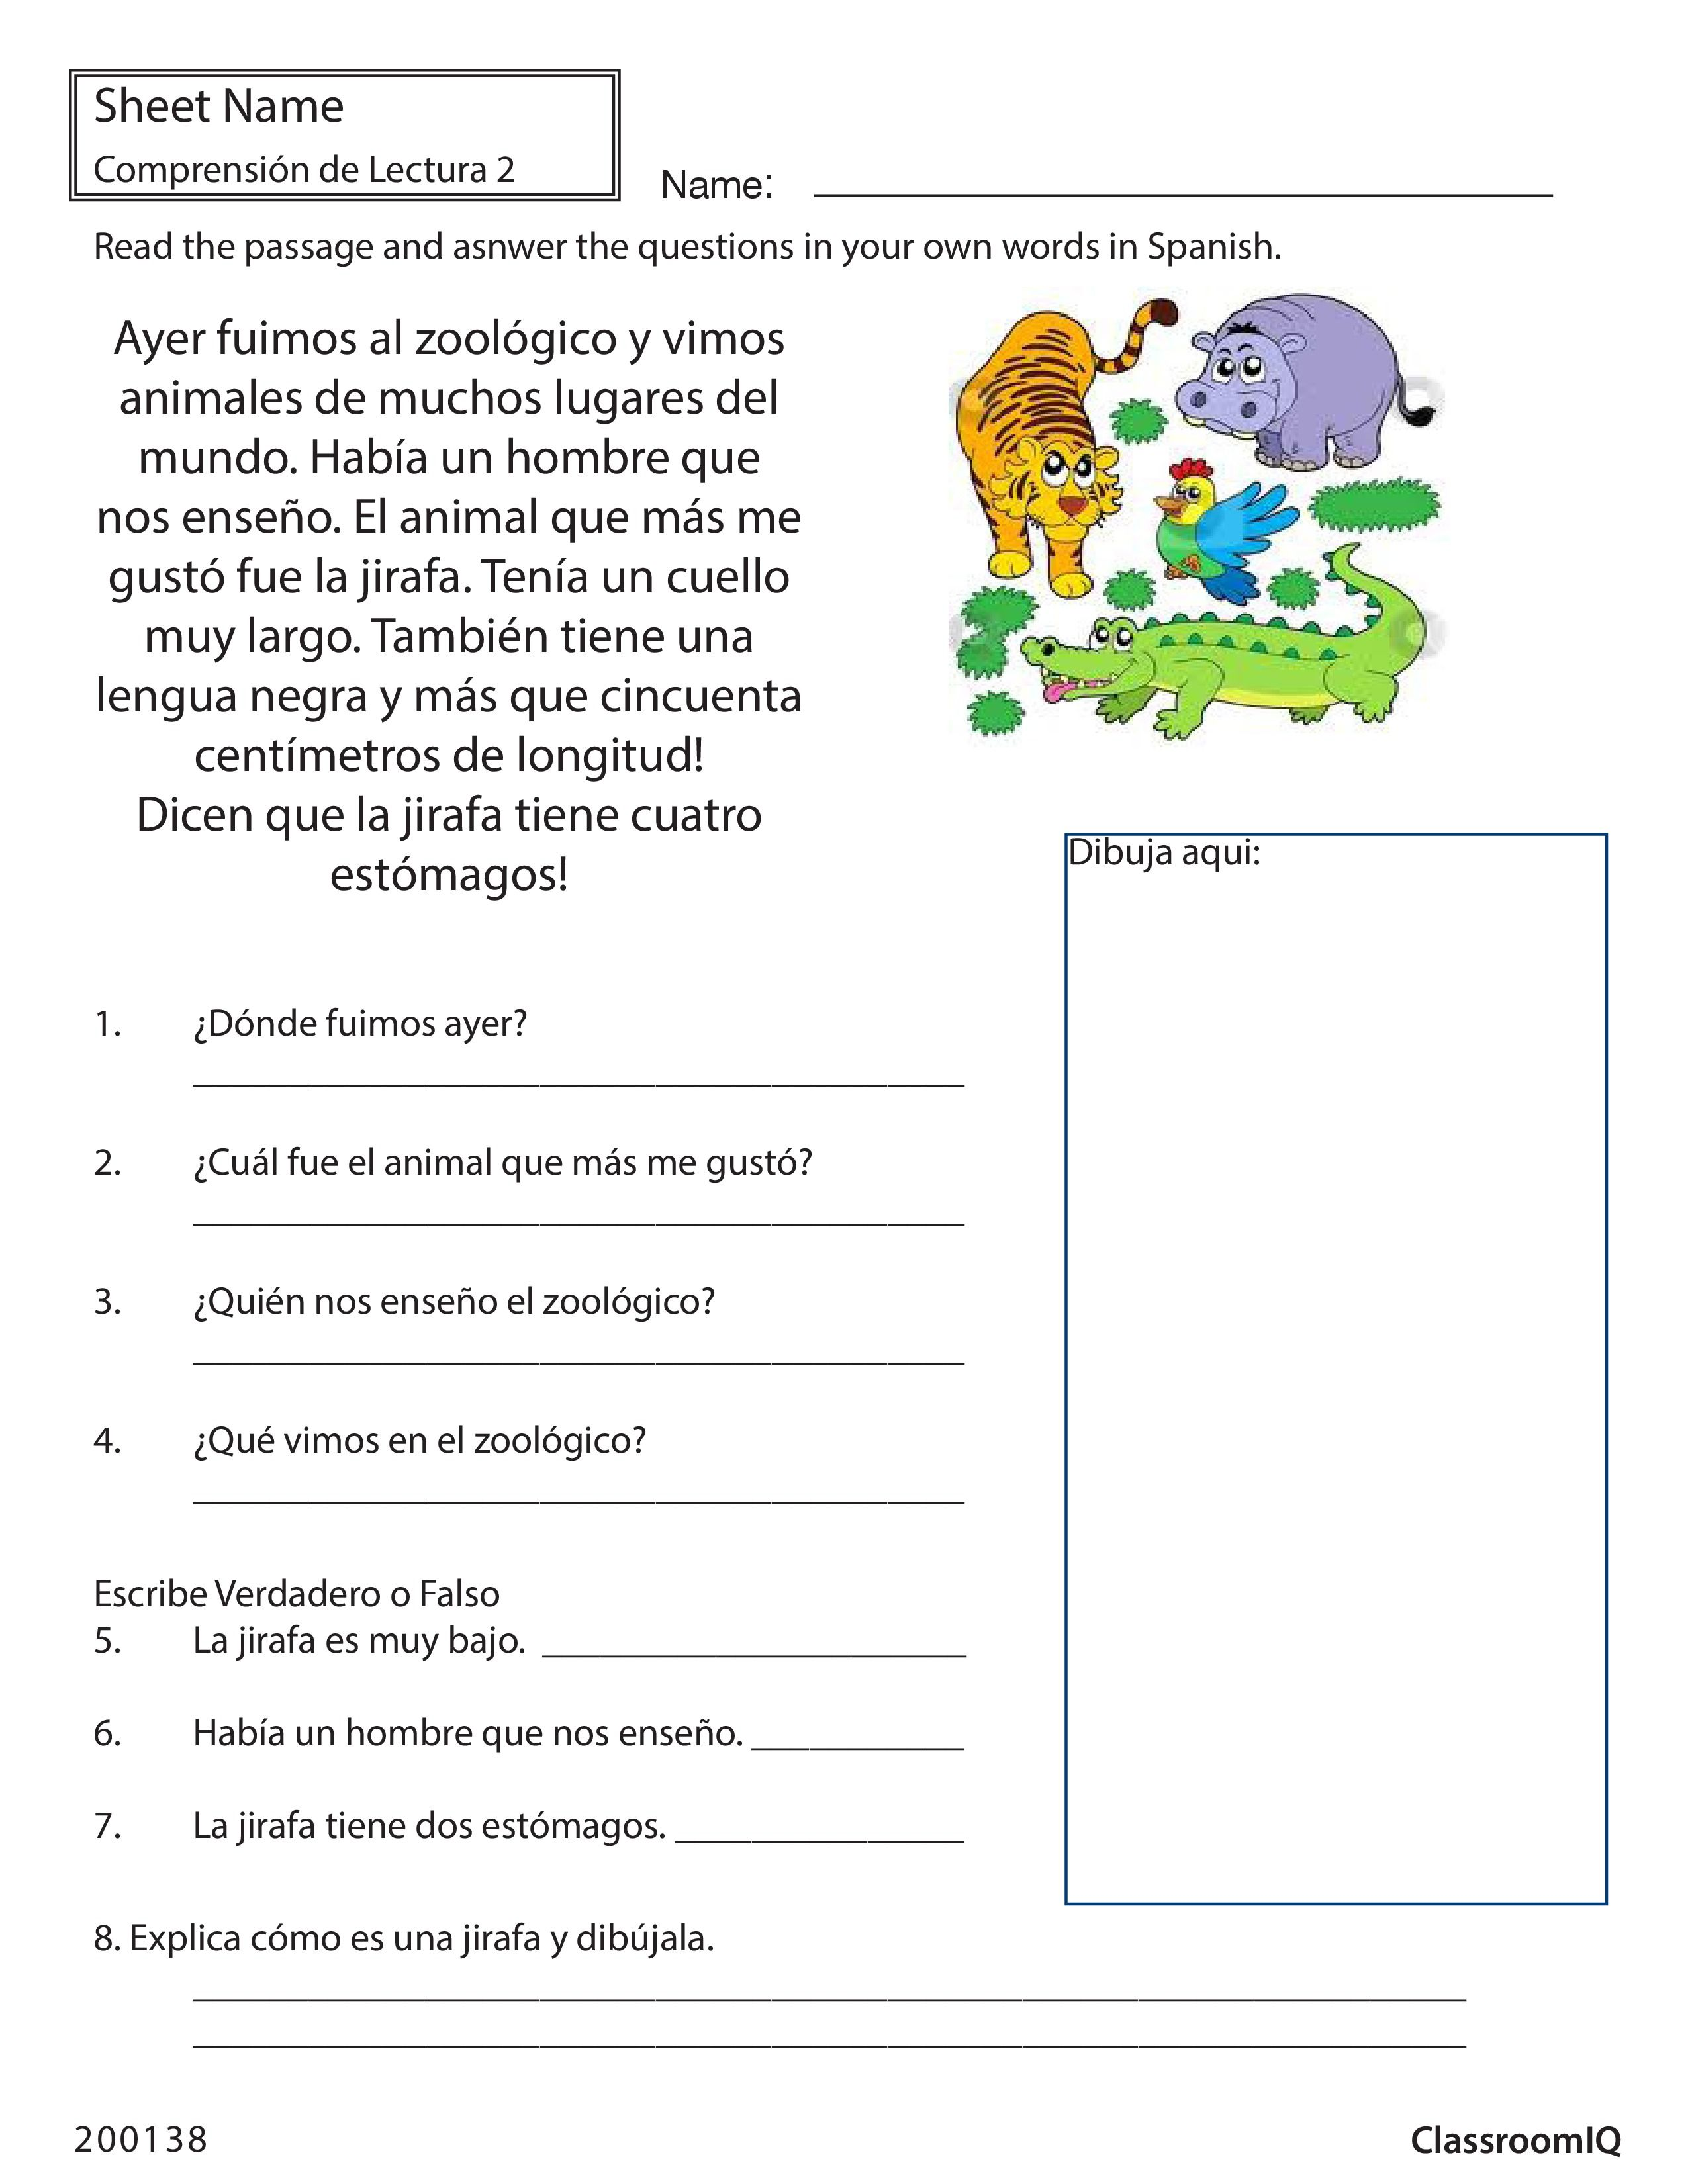 Respond to passage zoo spanishworksheet newteachers printable respond to passage zoo spanishworksheet newteachers printable spanish worksheetsspanish robcynllc Image collections